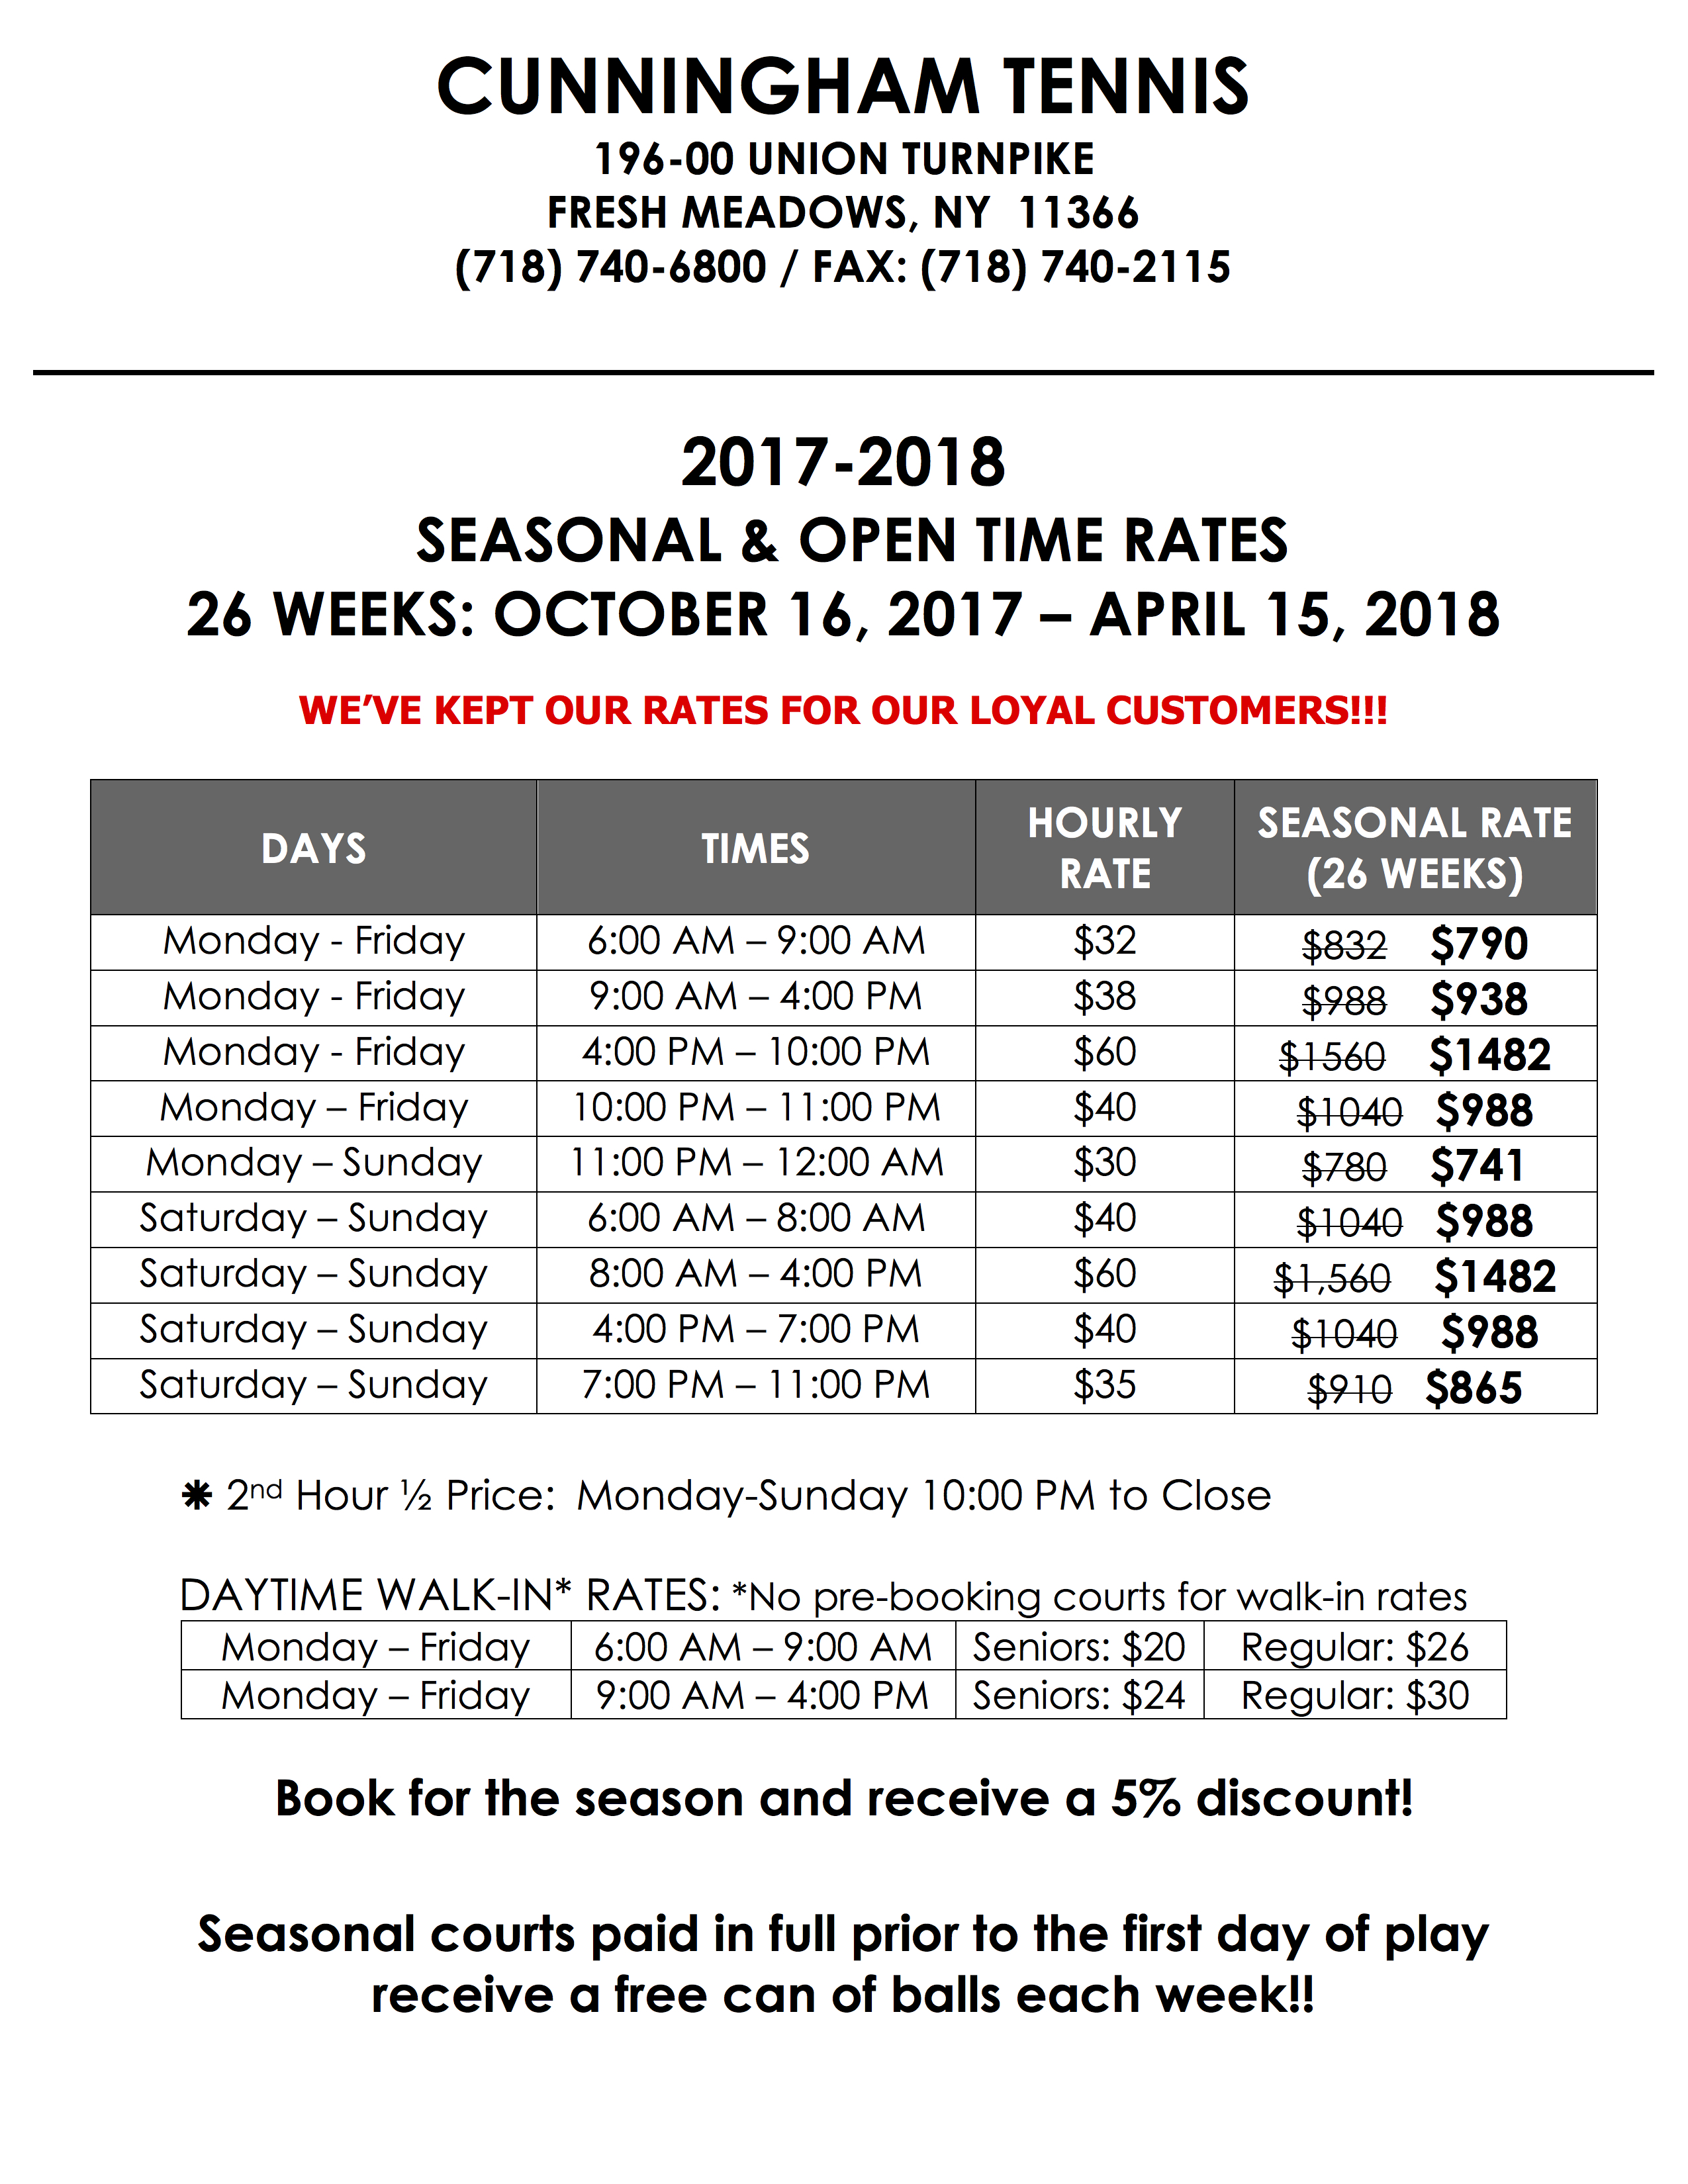 Open Time Rates - 2017-18